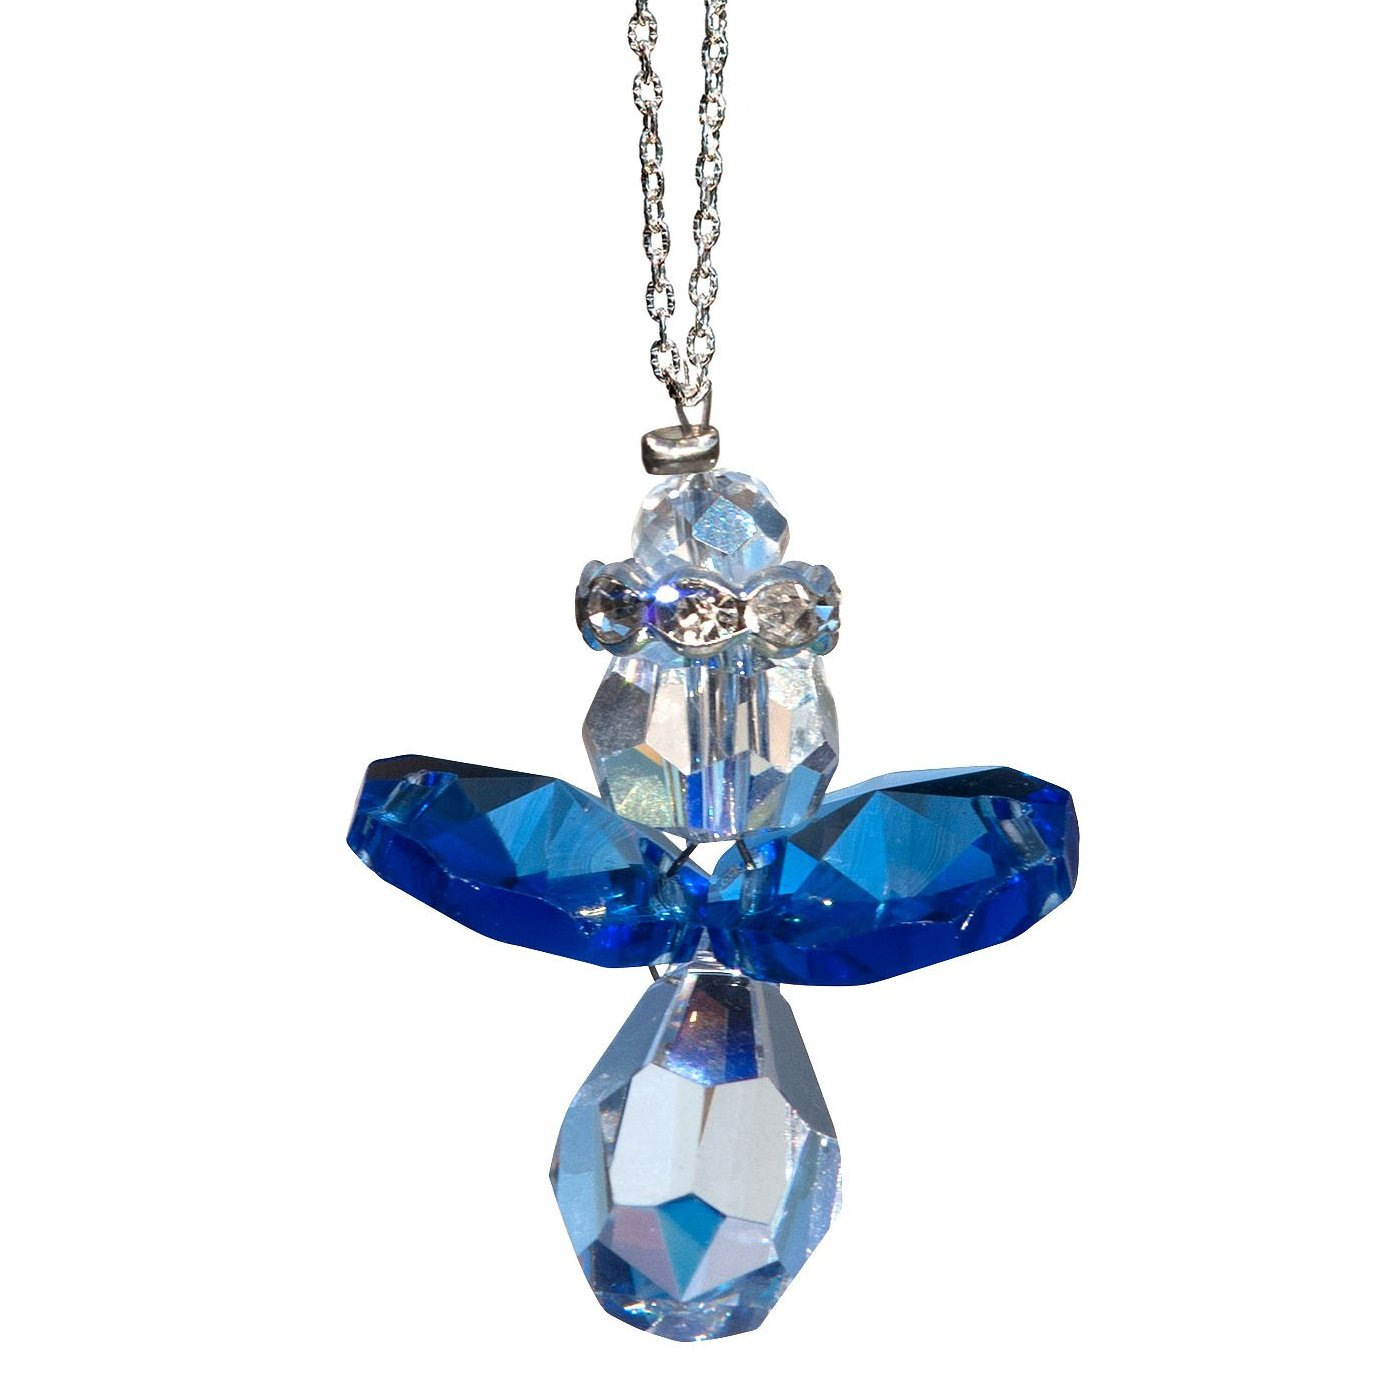 Blue Angel Crystal Suncatcher